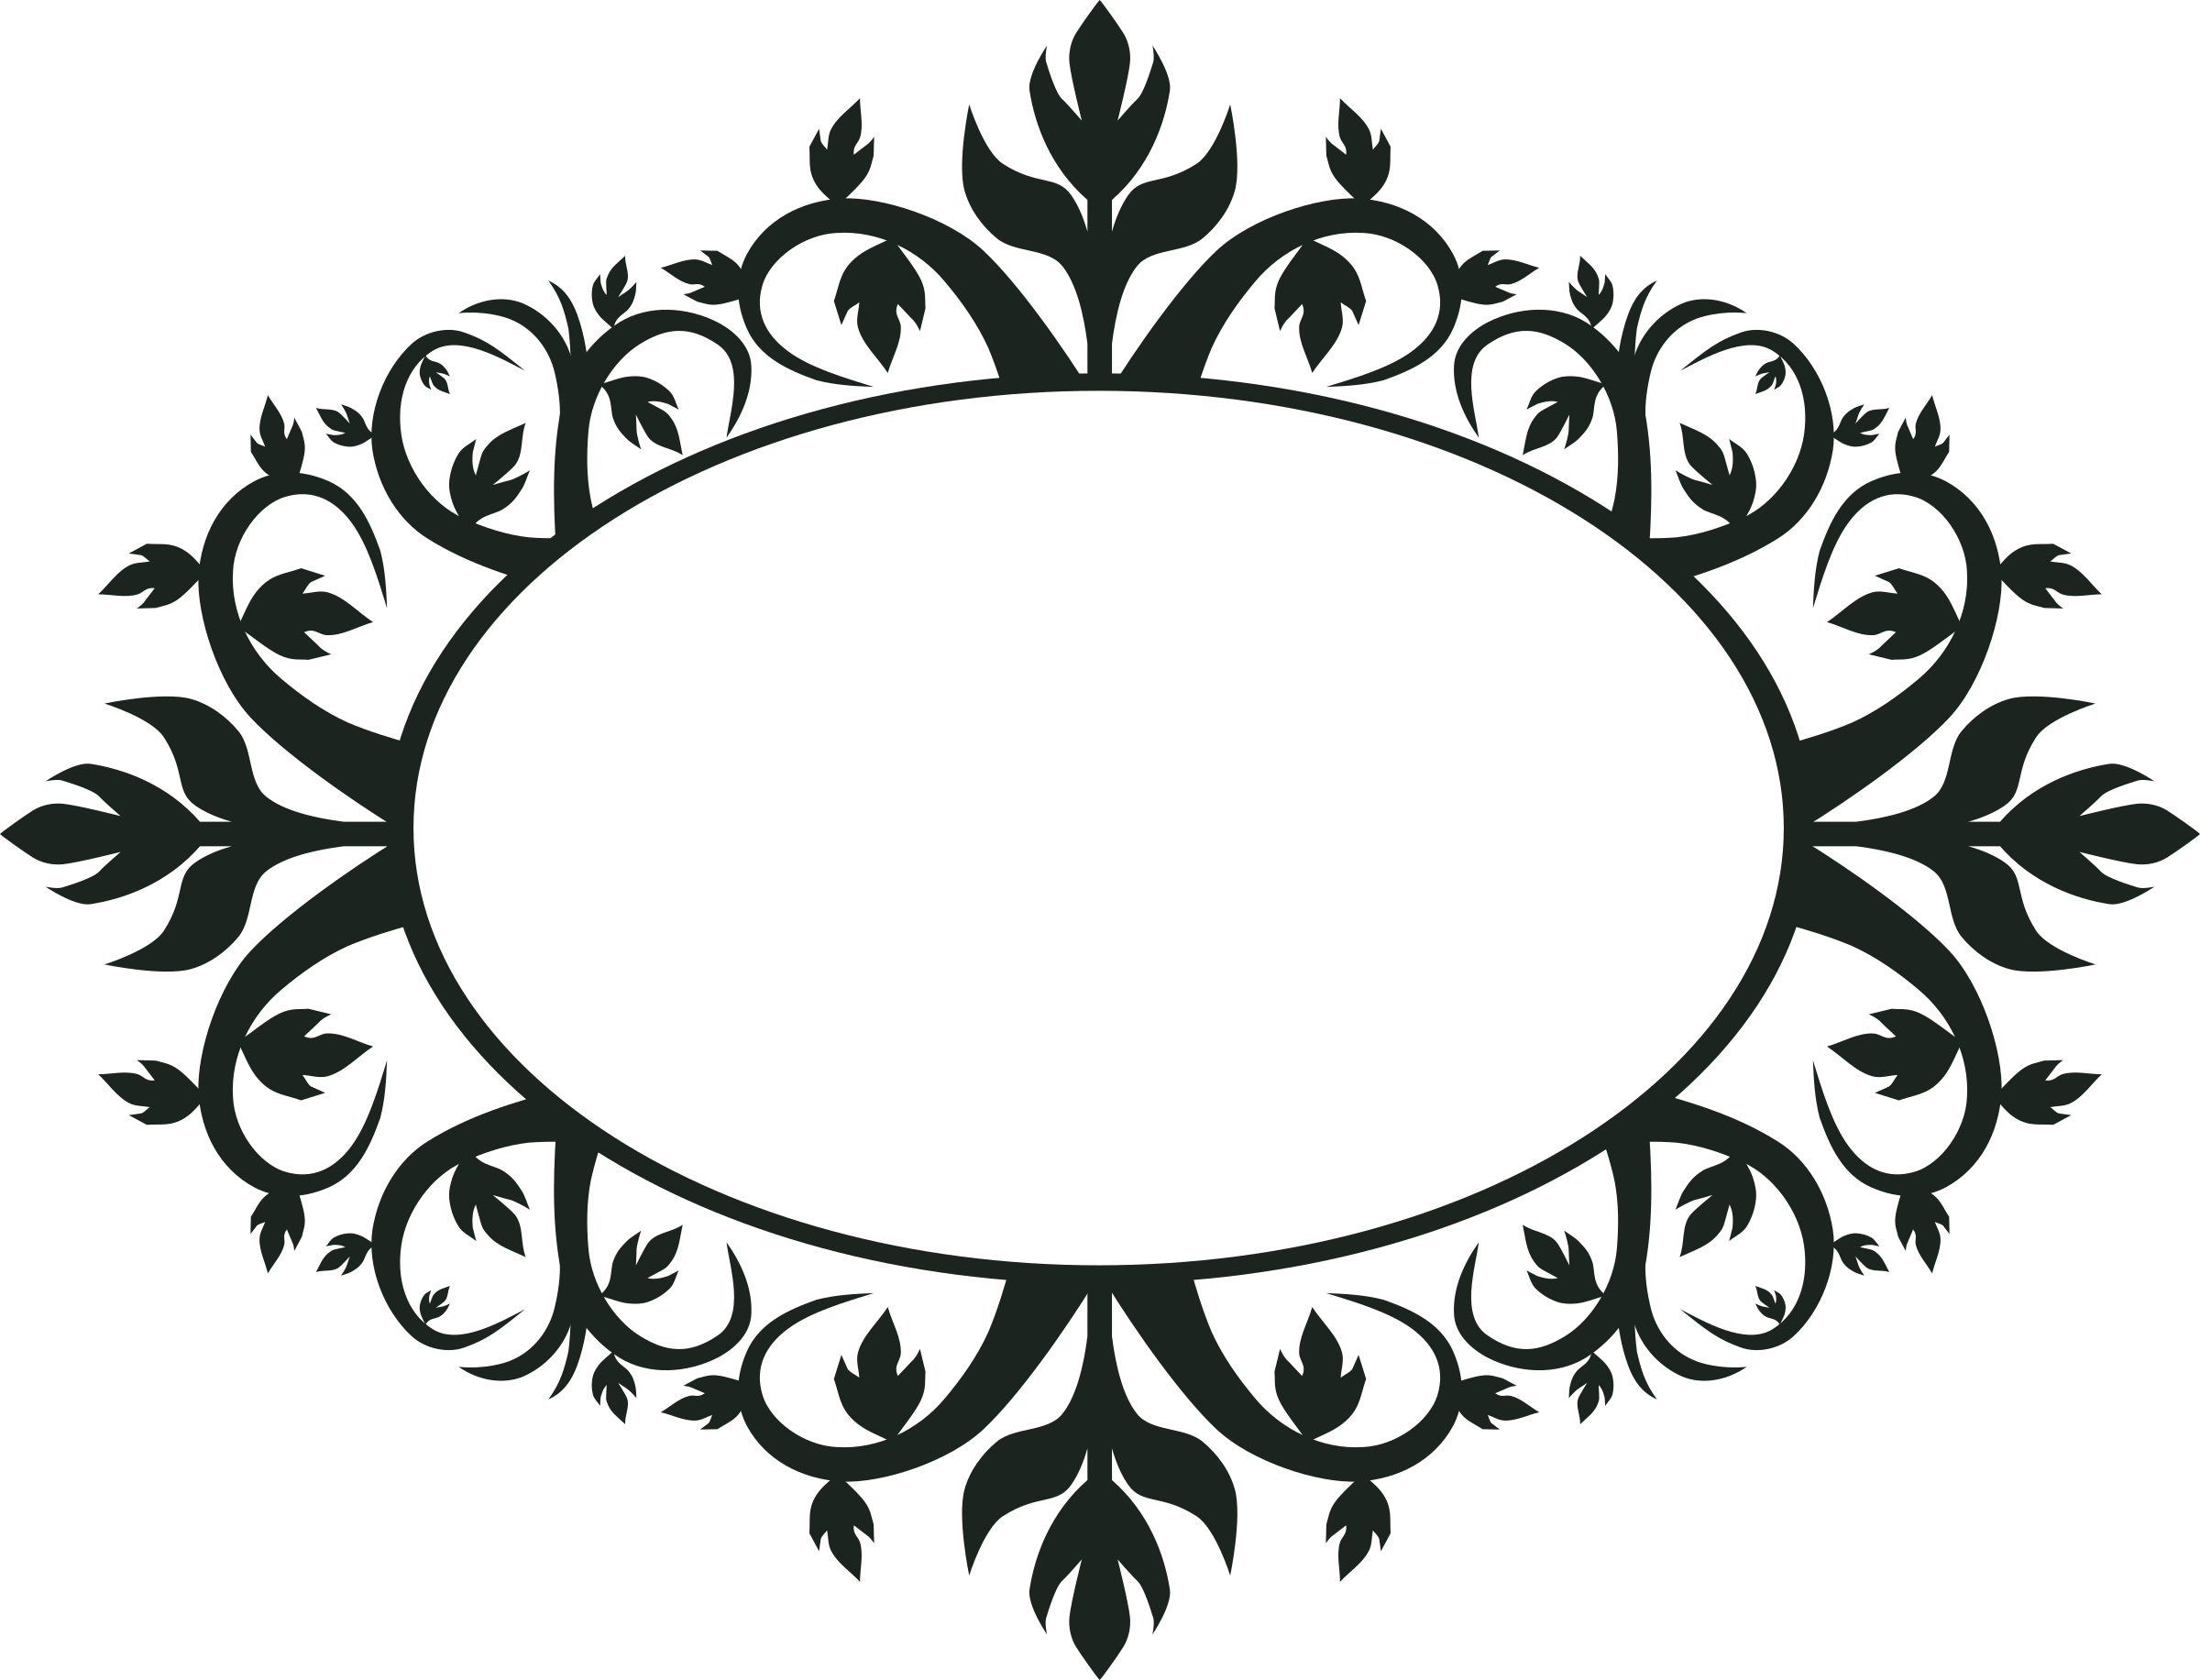 Ornament frame by jokantola. Lace clipart oval